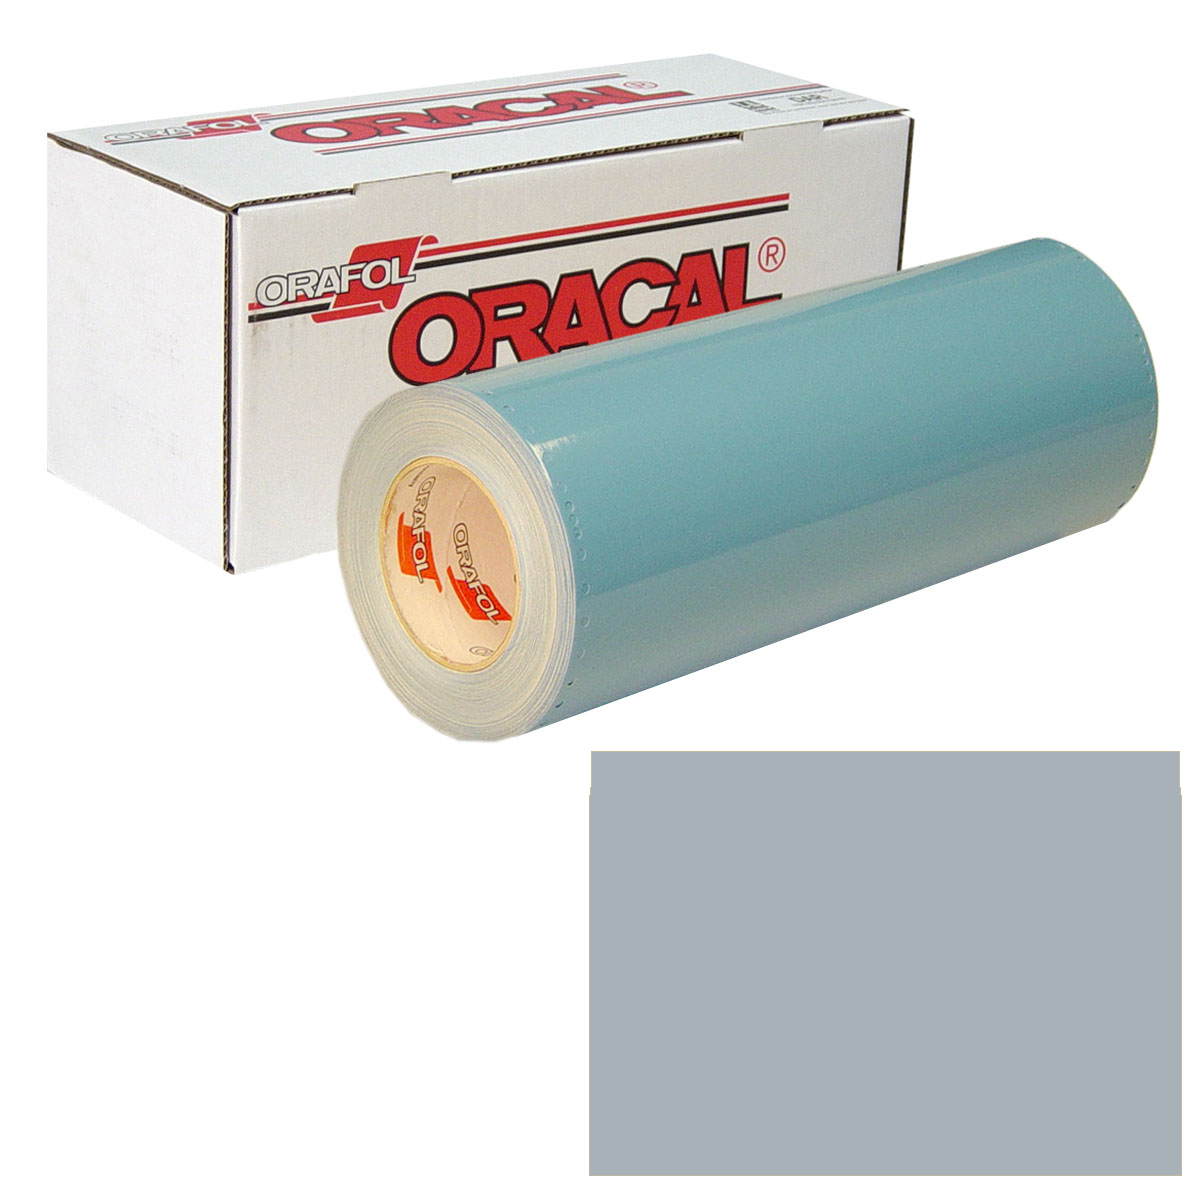 ORACAL 751 Unp 24in X 50yd 090 Silver Grey